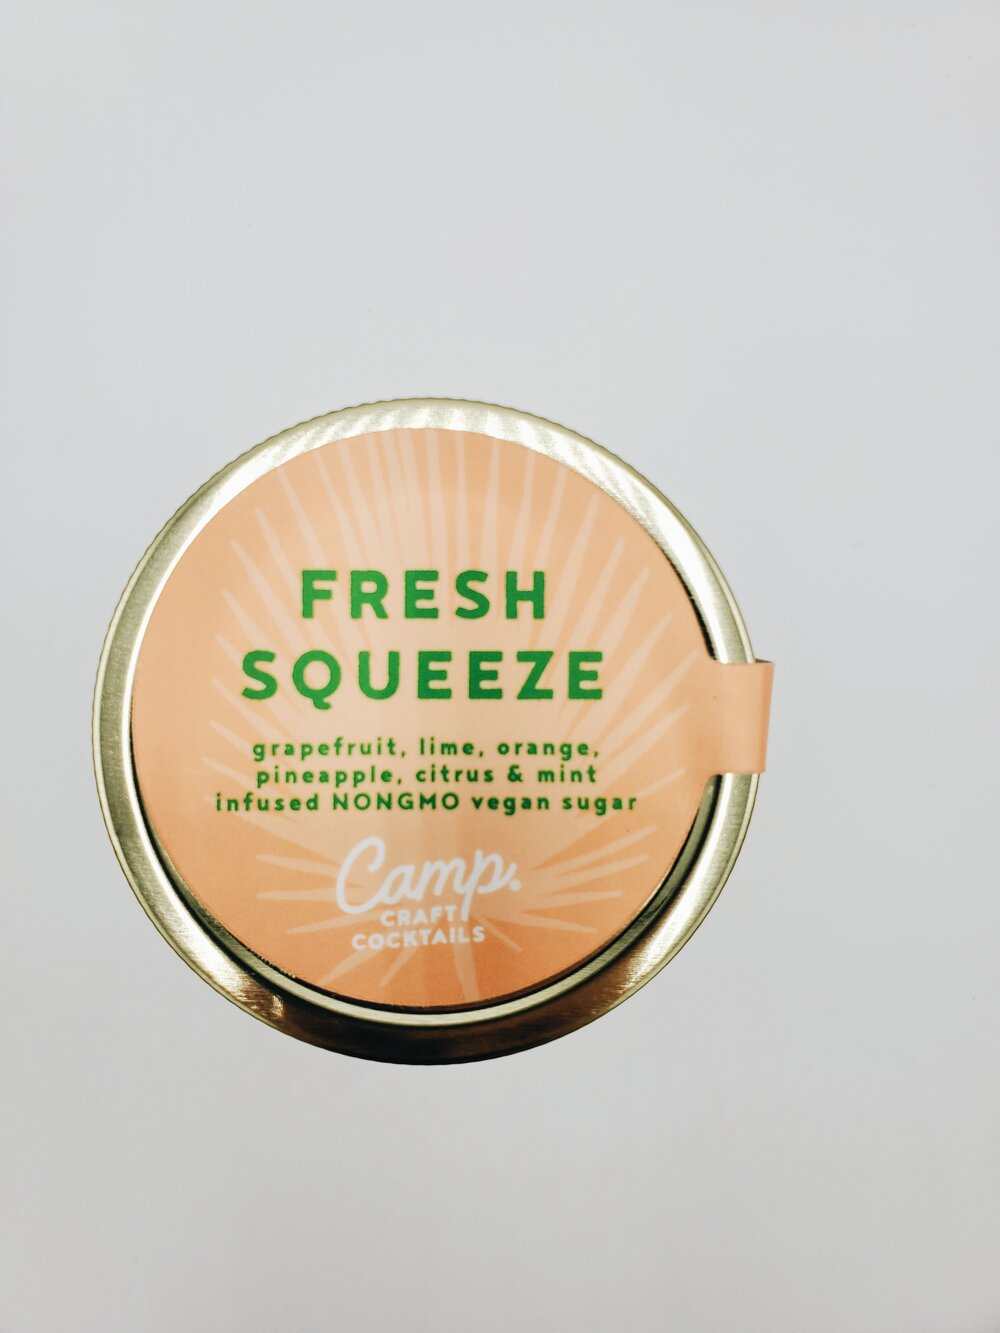 CAMP CRAFT COCKTAILS - 16OZ FRESH SQUEEZE